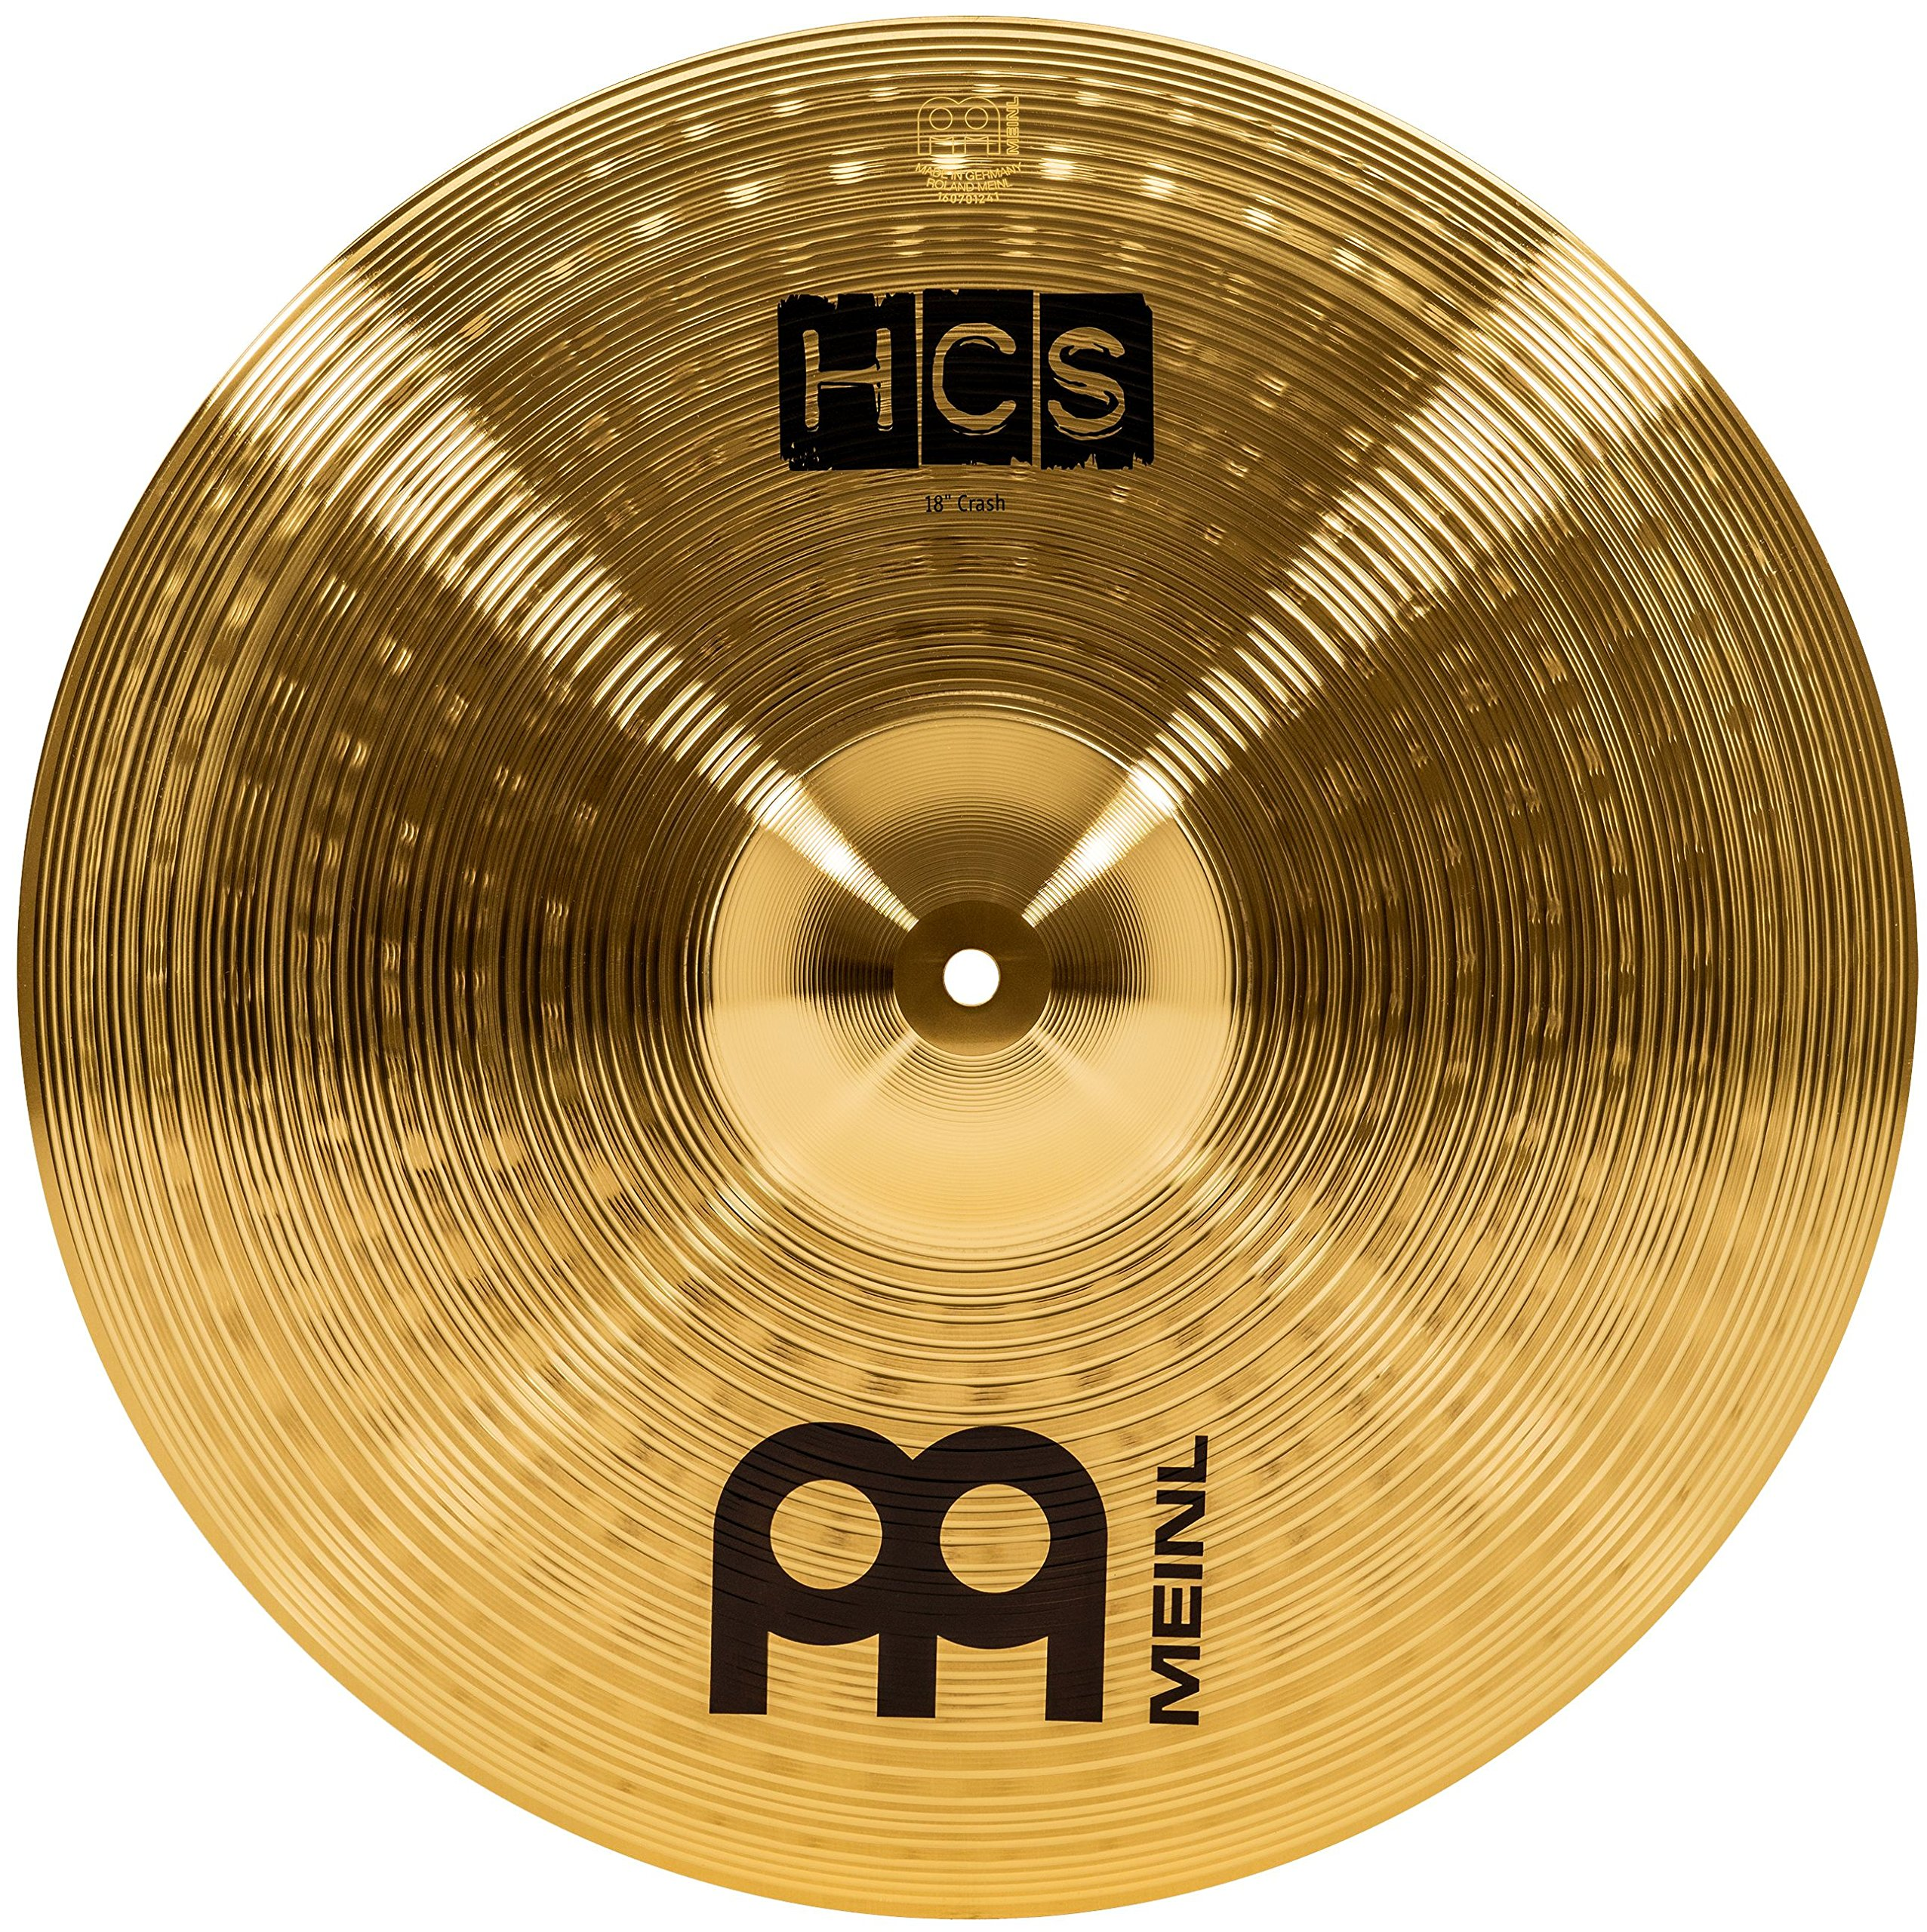 Meinl 18'' Crash Cymbal - HCS Traditional Finish Brass for Drum Set, Made In Germany, 2-YEAR WARRANTY (HCS18C)